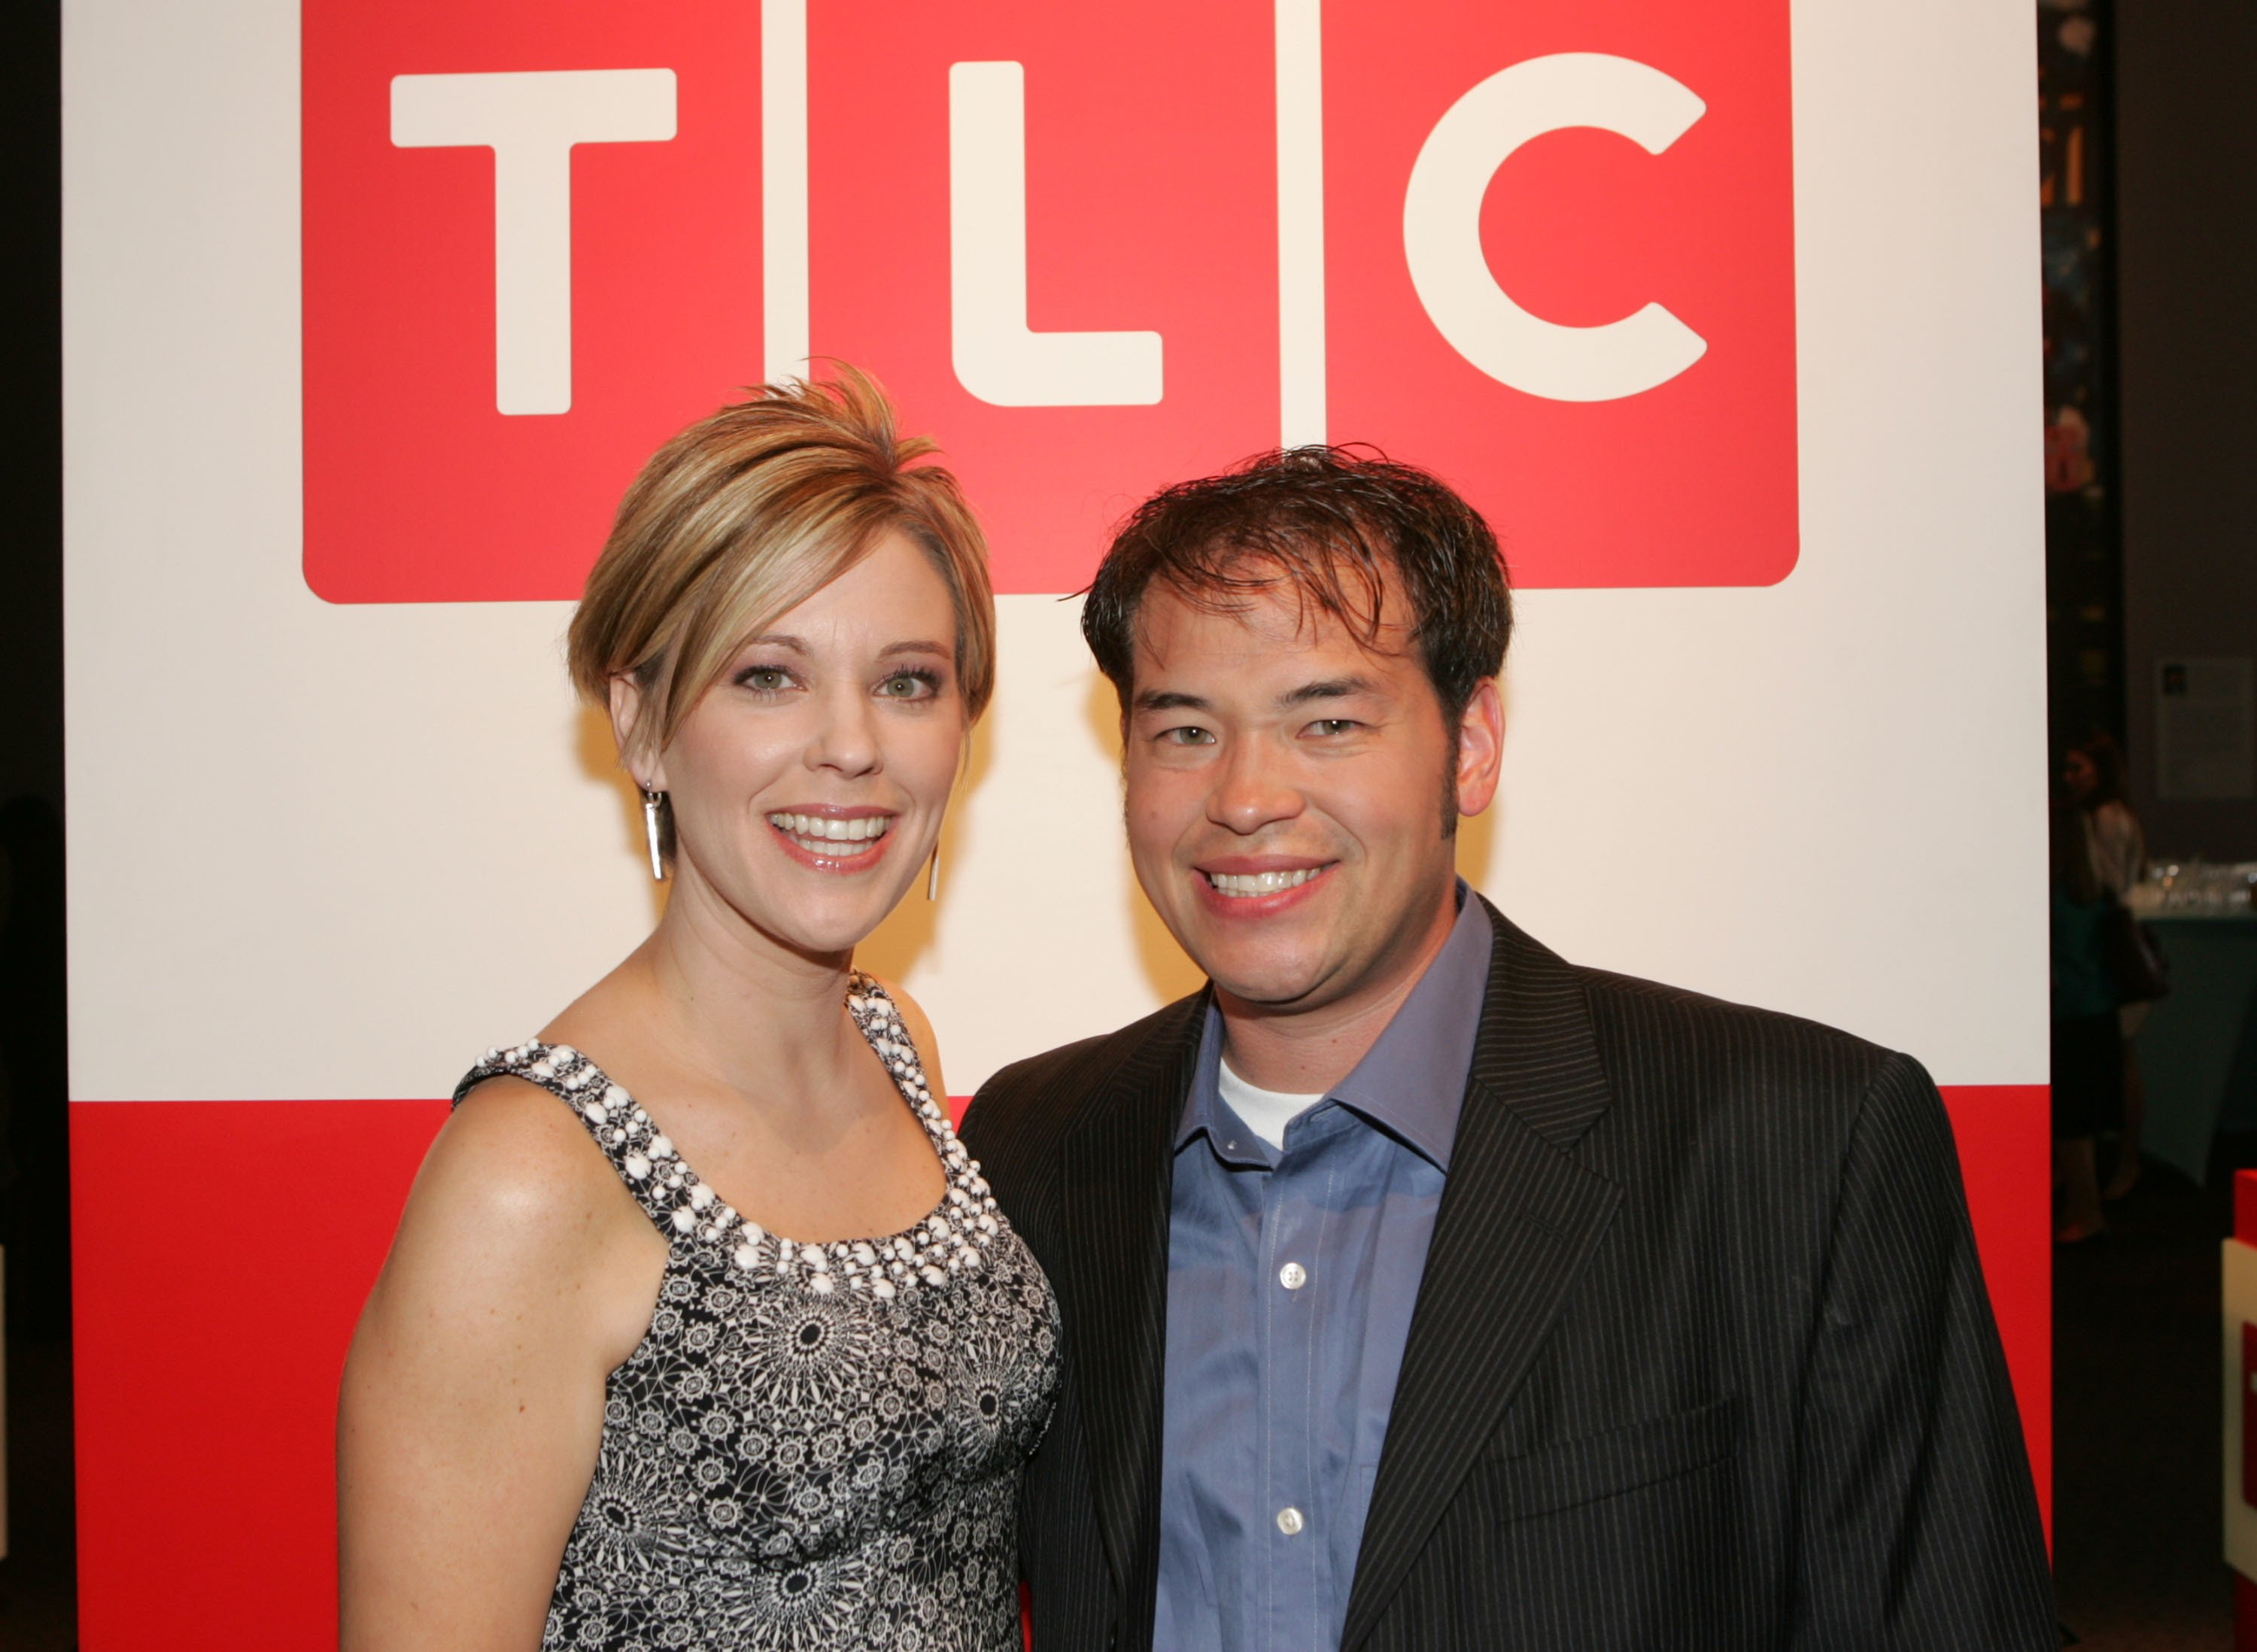 Jon and Kate Gosselin at the Discovery Upfront at Jazz event at the Lincoln in 2008 | Photo: Getty Images